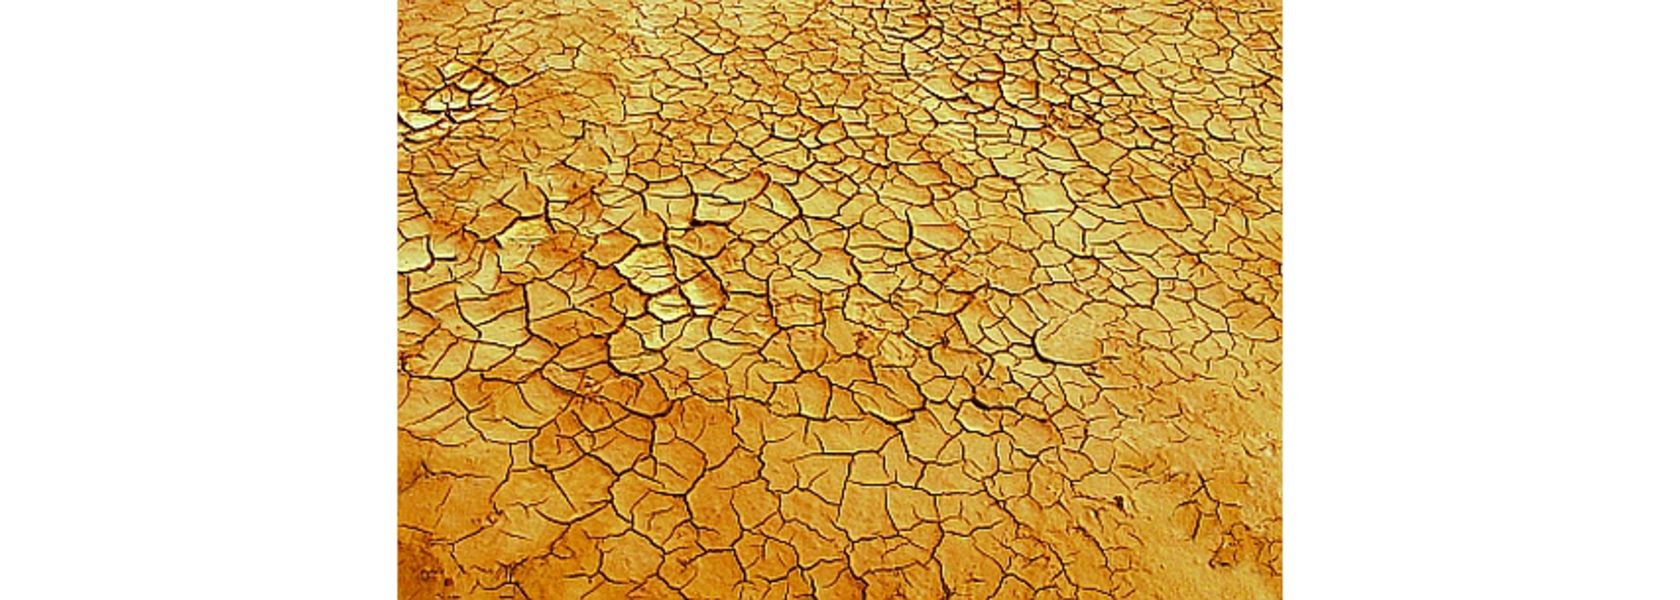 Government rolls out next phase of drought assistance